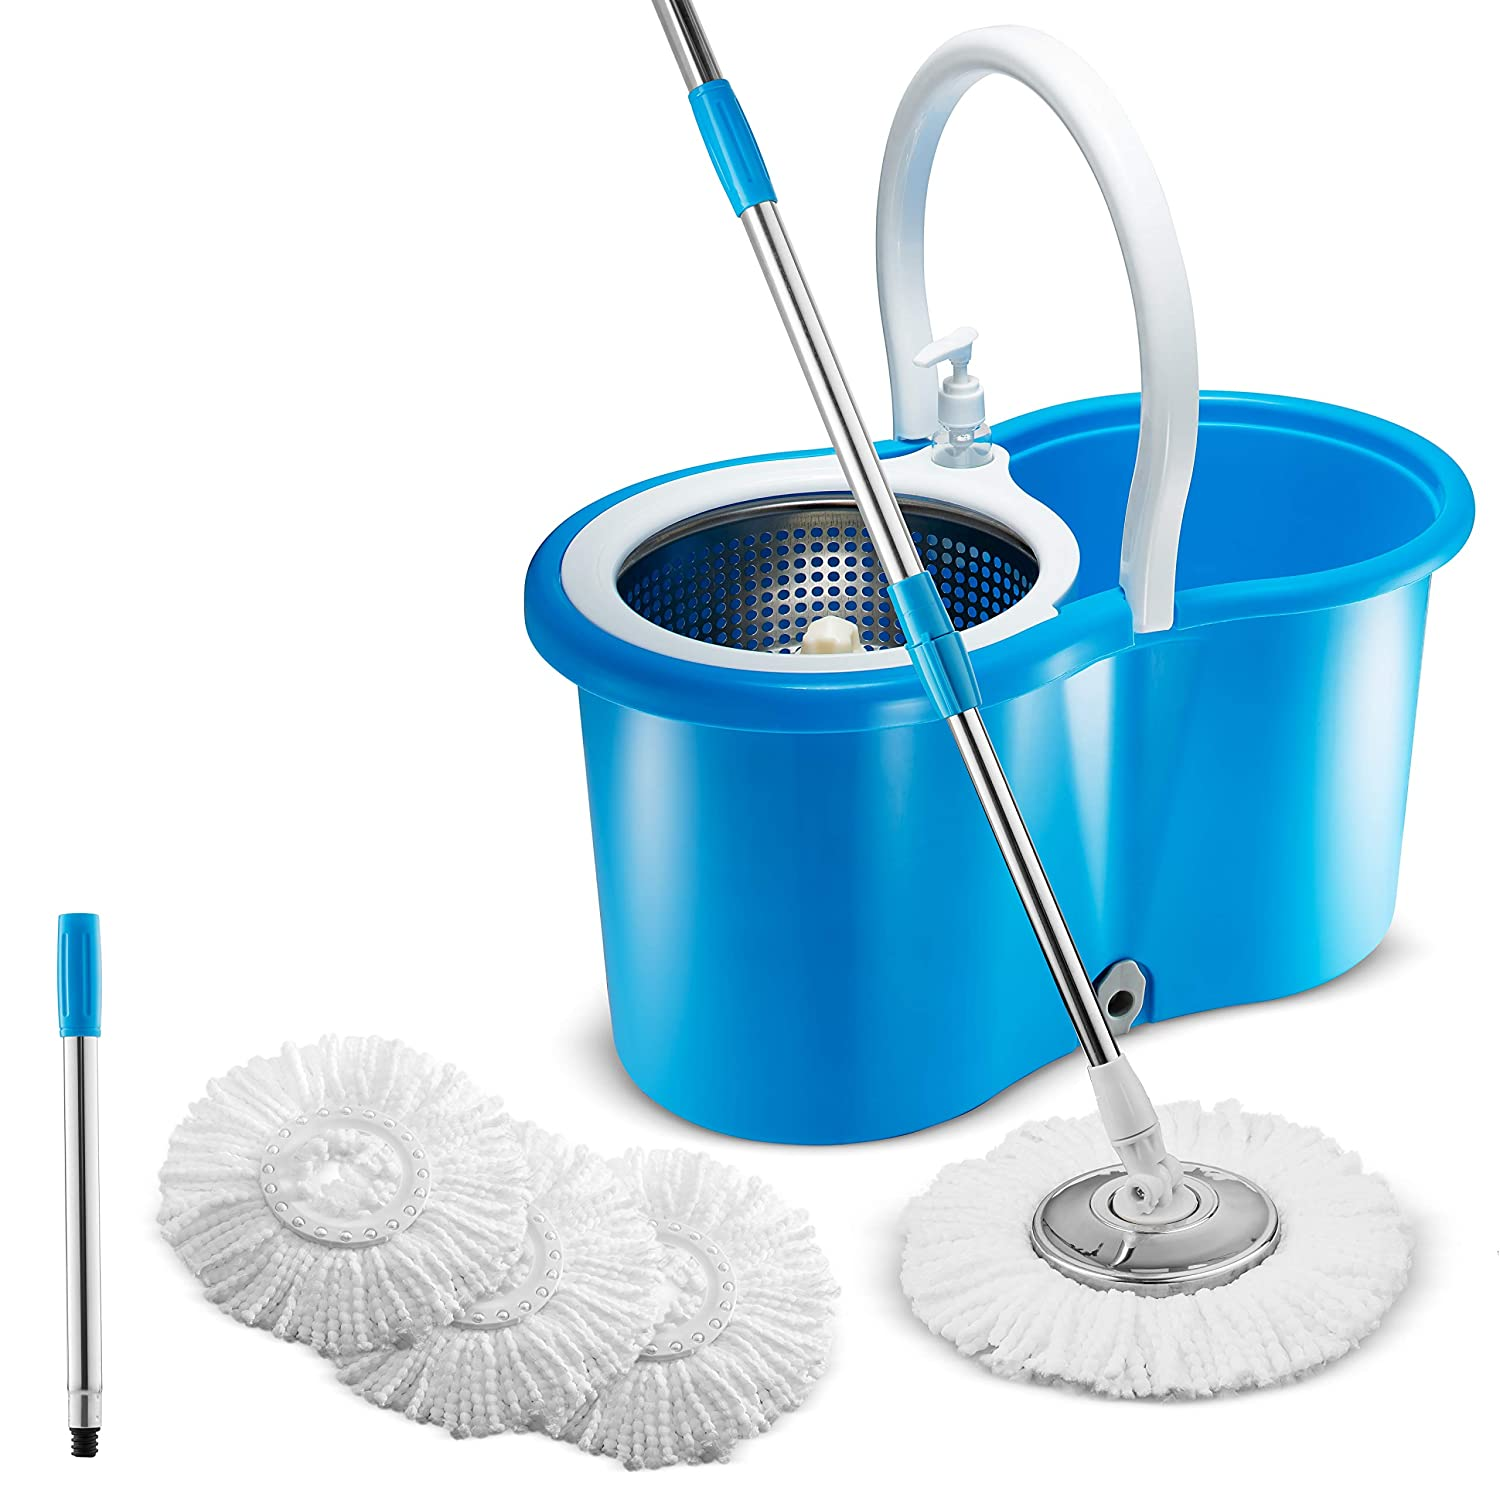 Premium All In One Stainless Steel 360 Spin Mop & Bucket System ~ Self-Wringing Mop With 3 Microfiber Mop Heads ~ Extended Length Adjustable Mop Pole with Stainless Steel Mop Plate Cleager CSMB1B